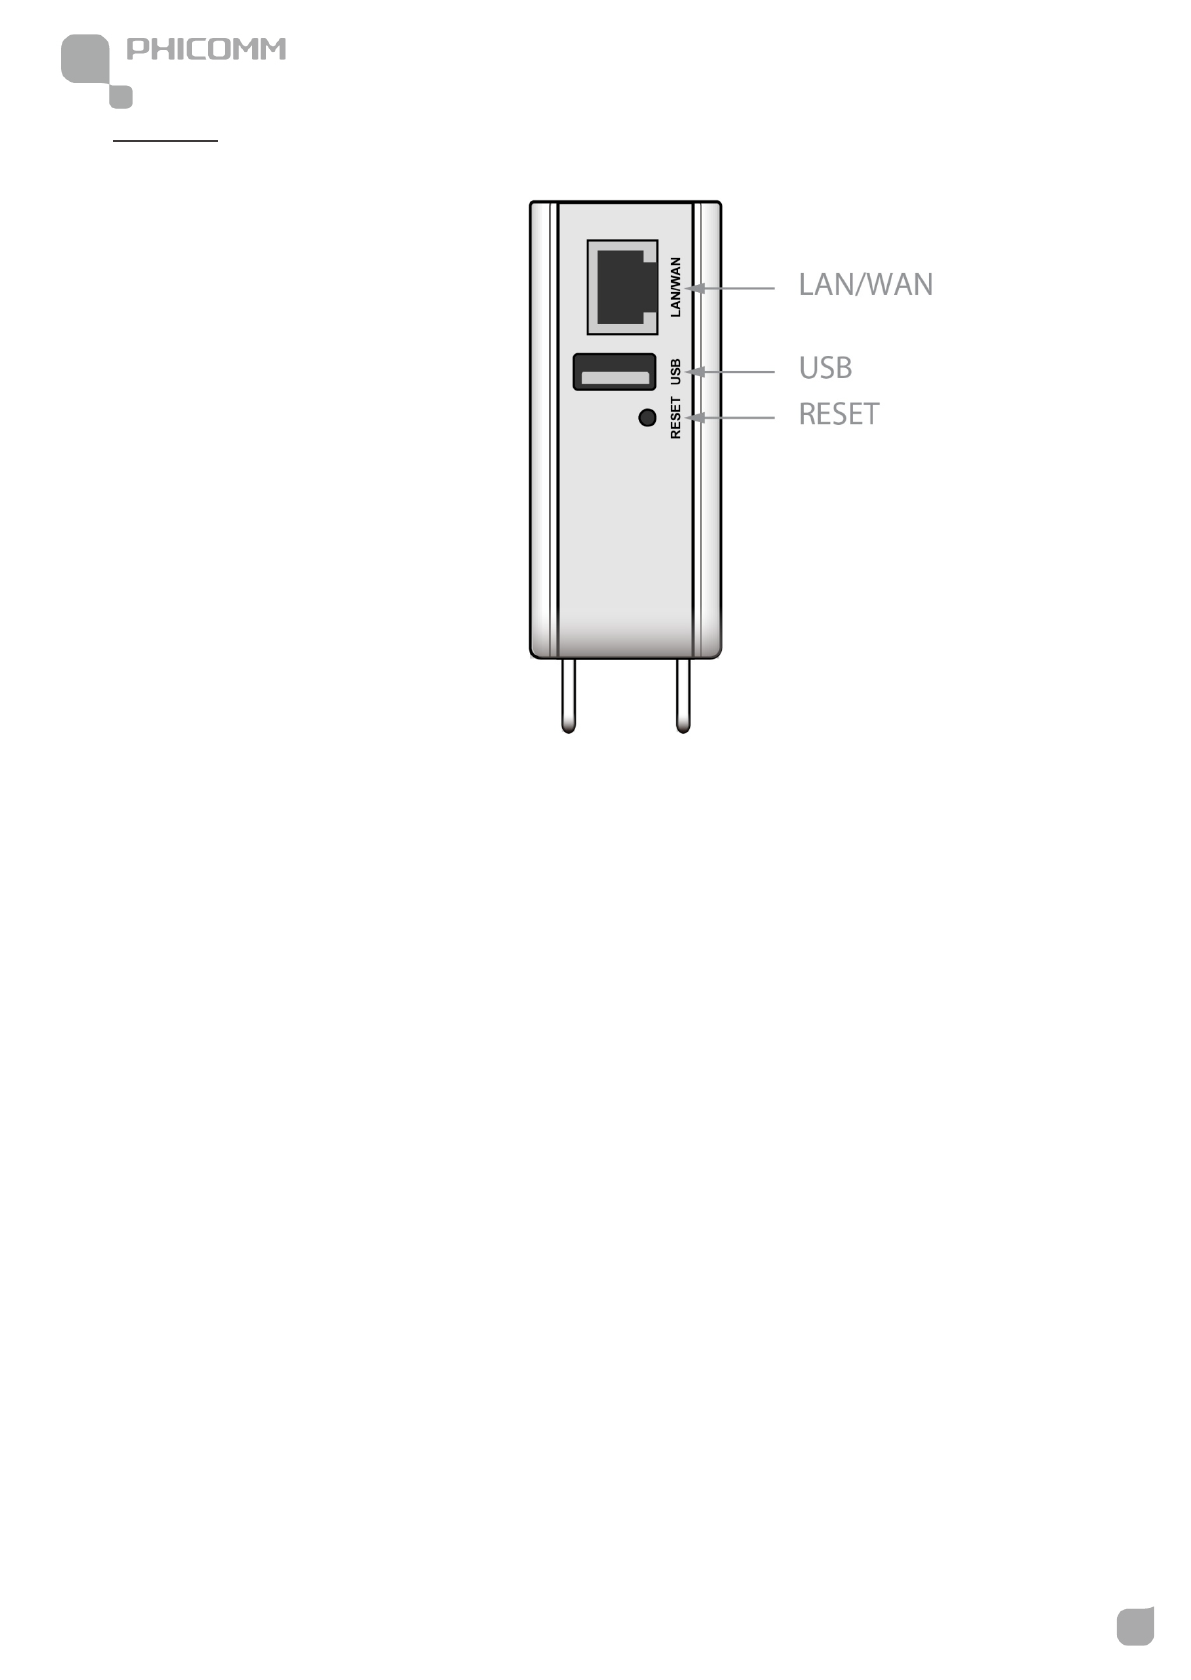 Phicomm WR401NA Wireless Nano Router User Manual